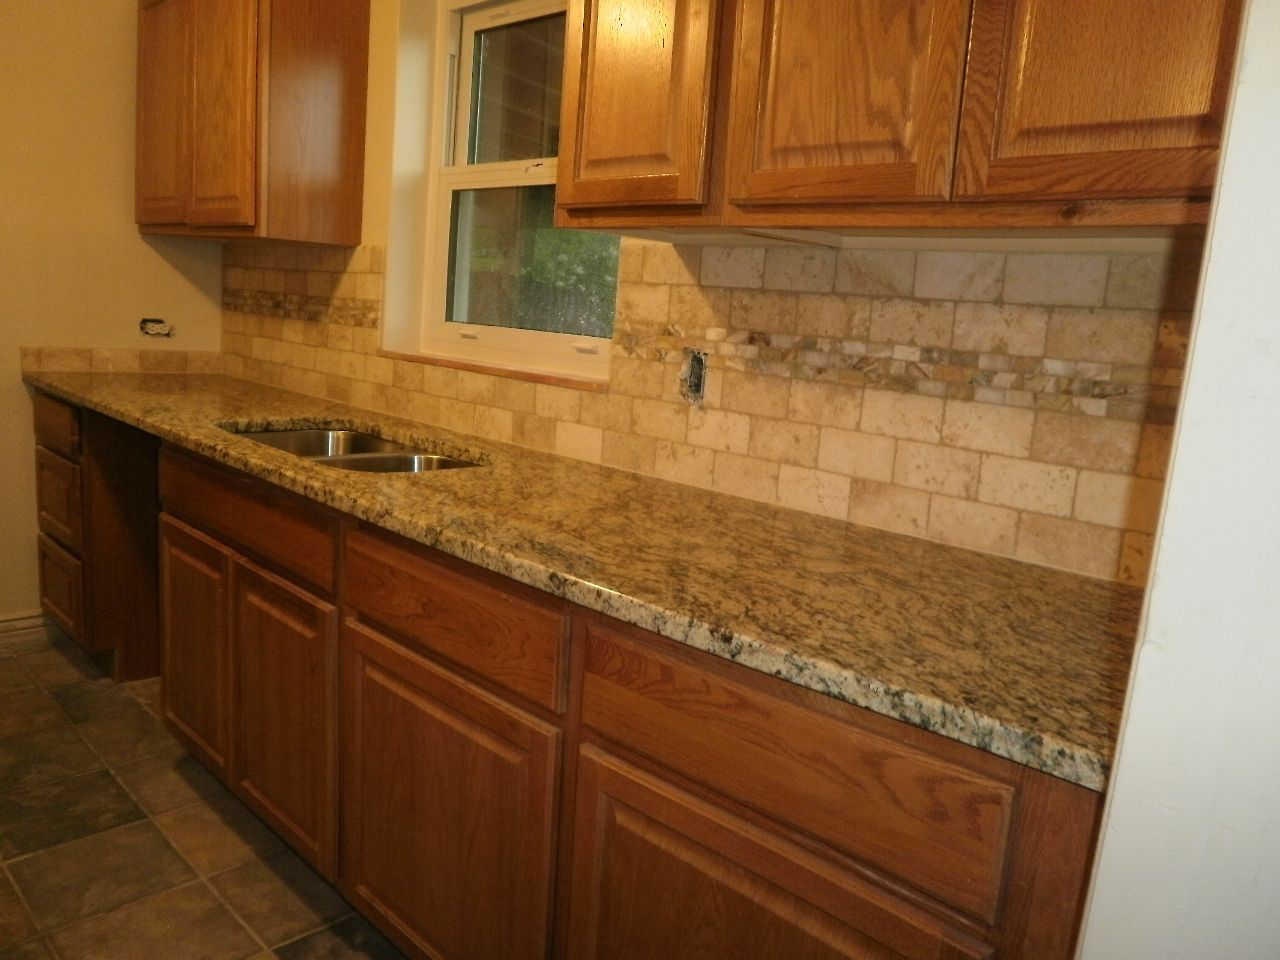 Uncategorized Kitchen Tile Backsplash Ideas kitchen backsplash ideas granite countertops apartment design tile backs